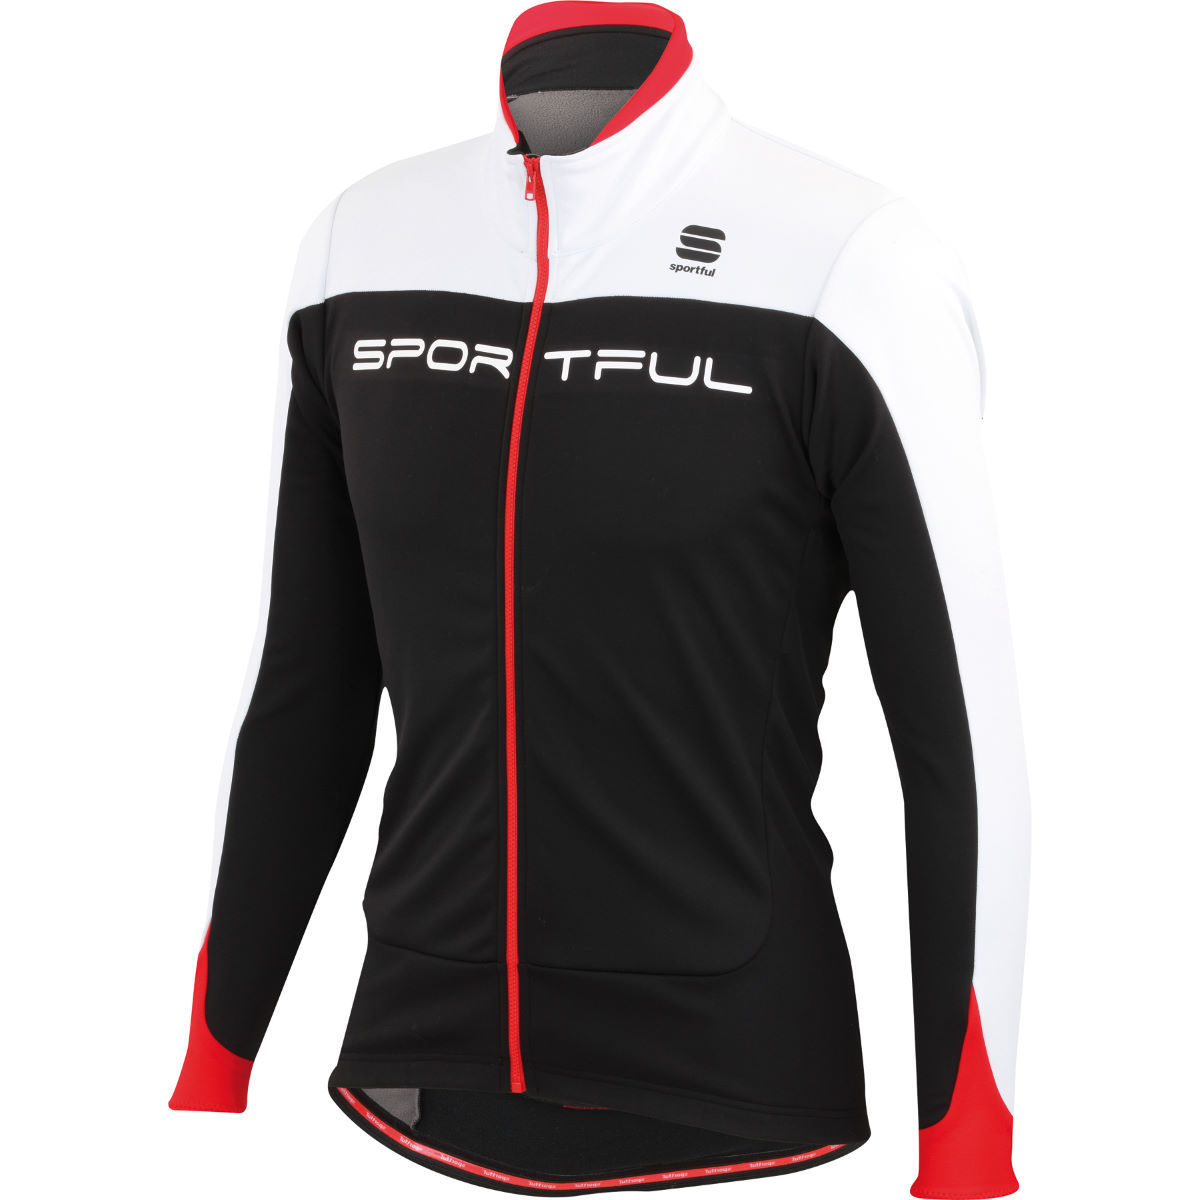 Veste Sportful Flash Softshell - XS Black/White/Red Coupe-vents vélo